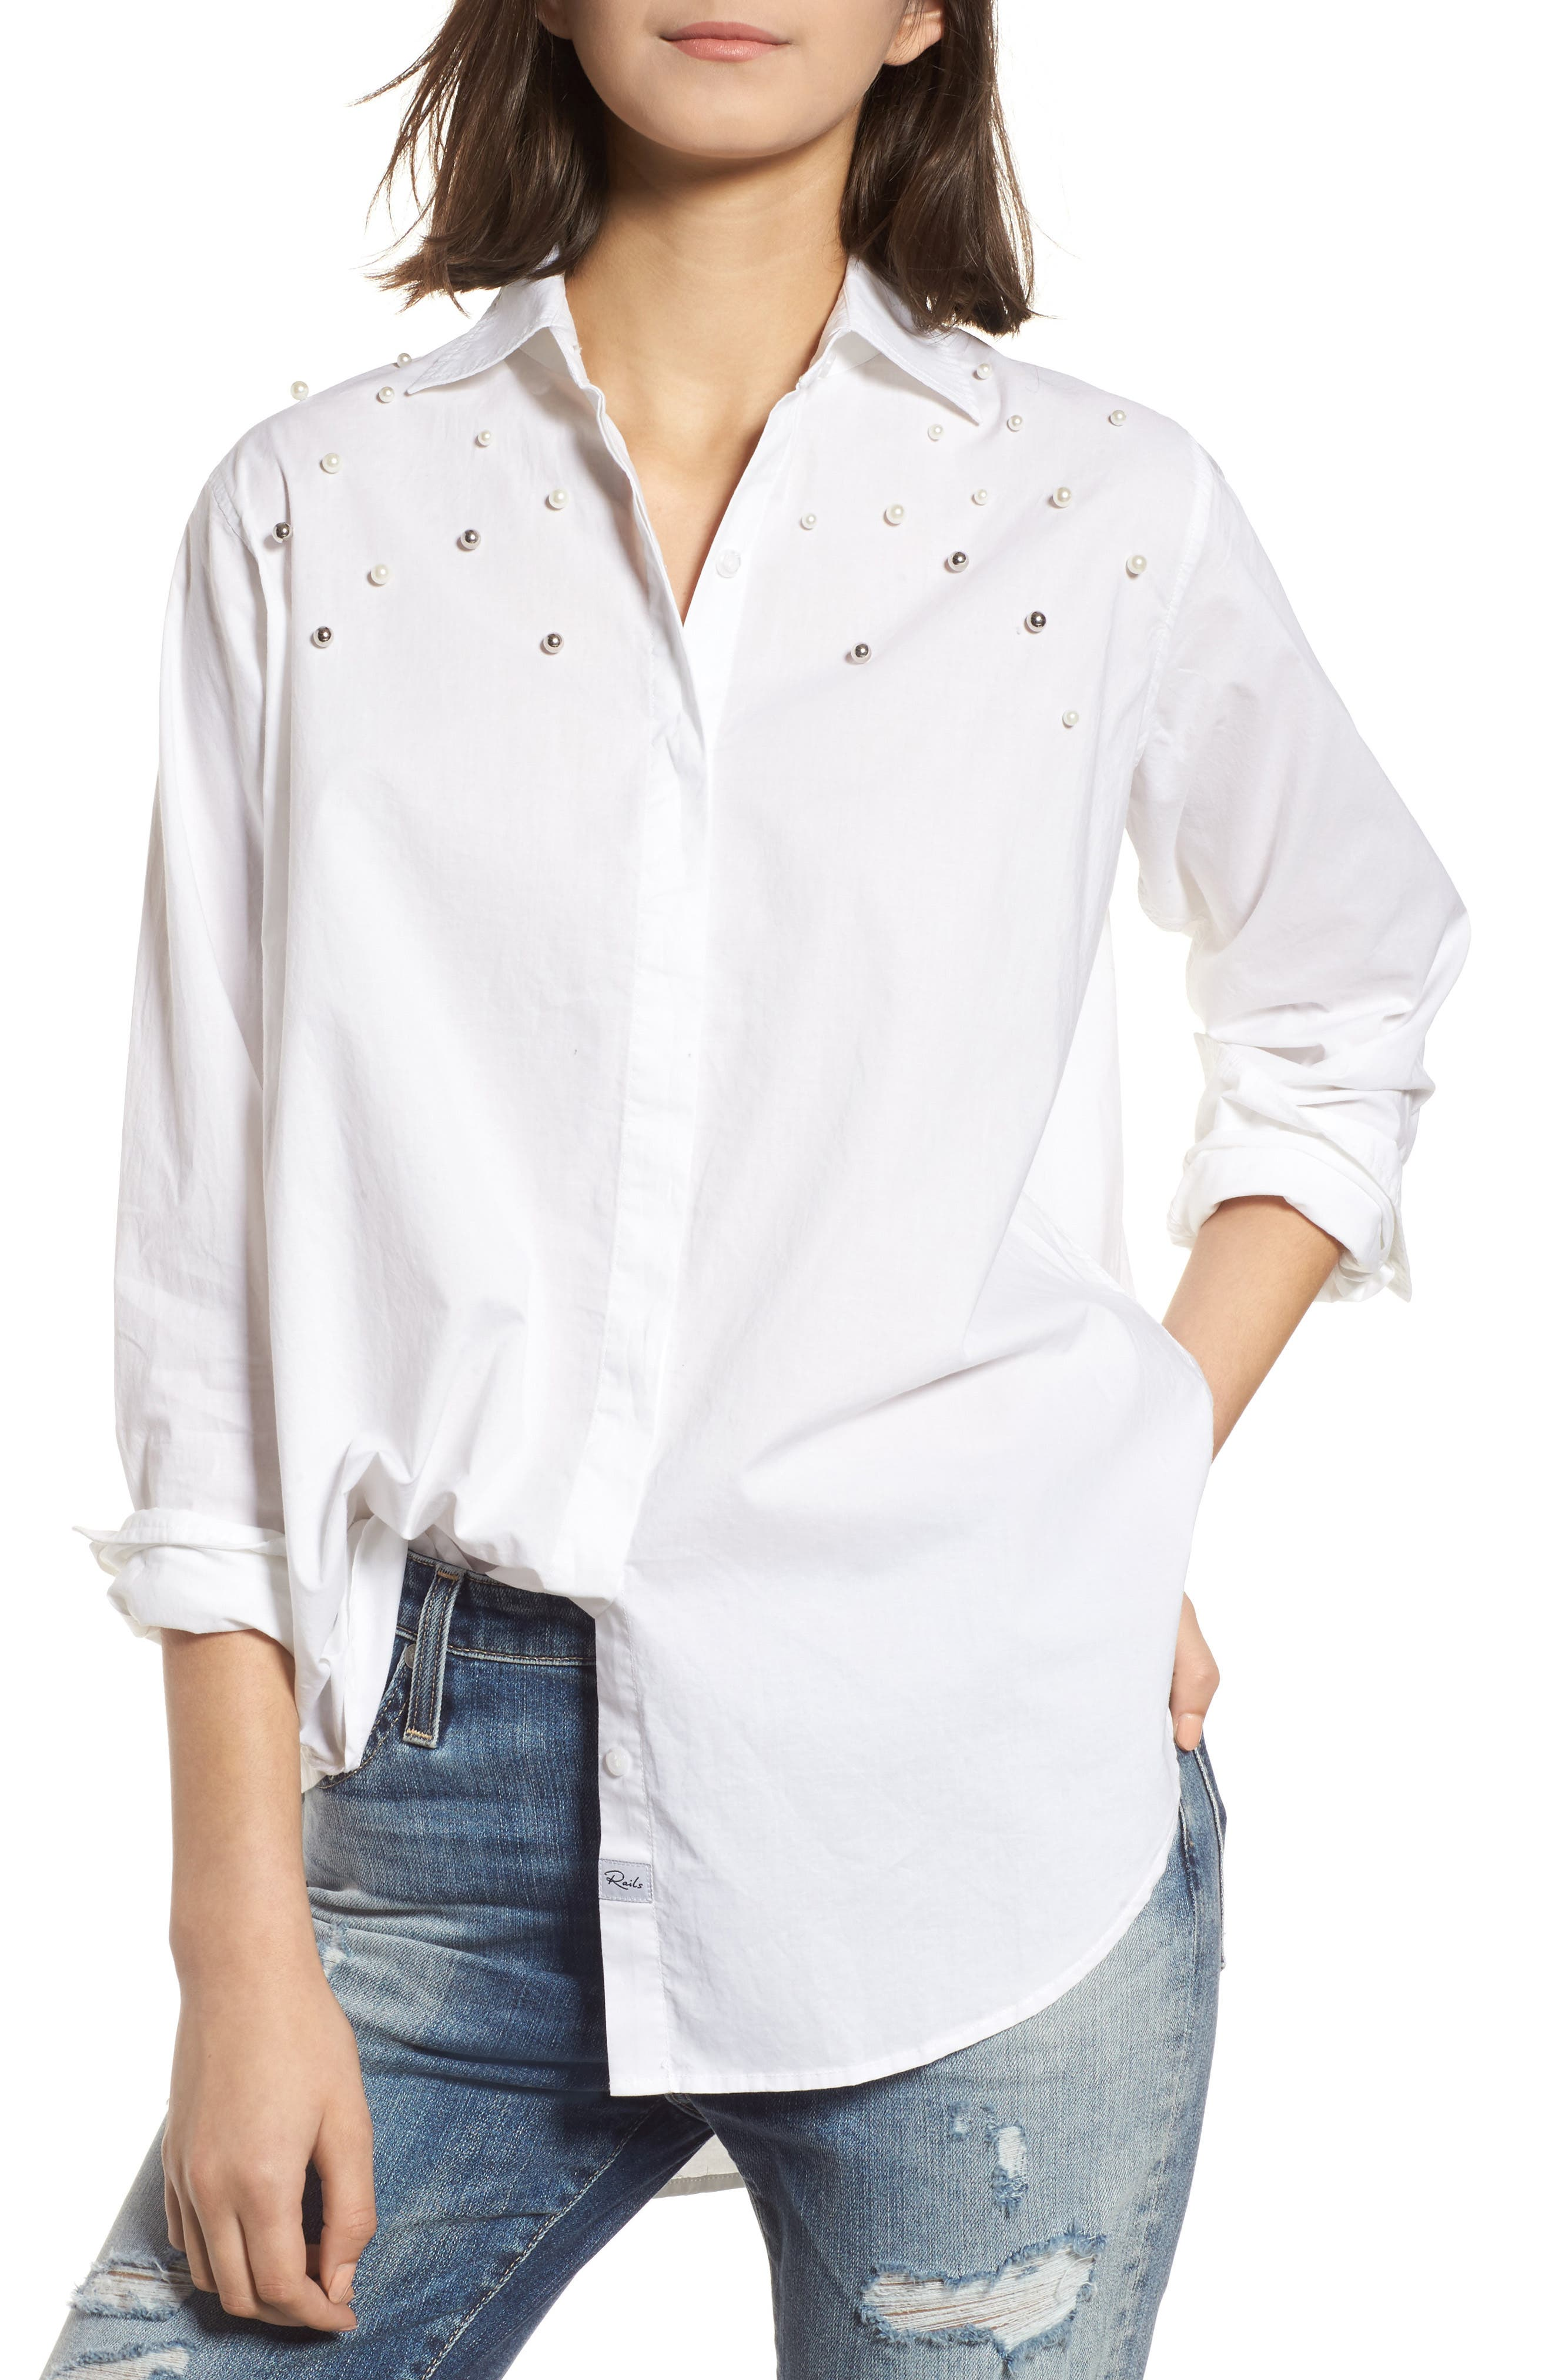 Taylor Beaded Shirt,                             Main thumbnail 1, color,                             100